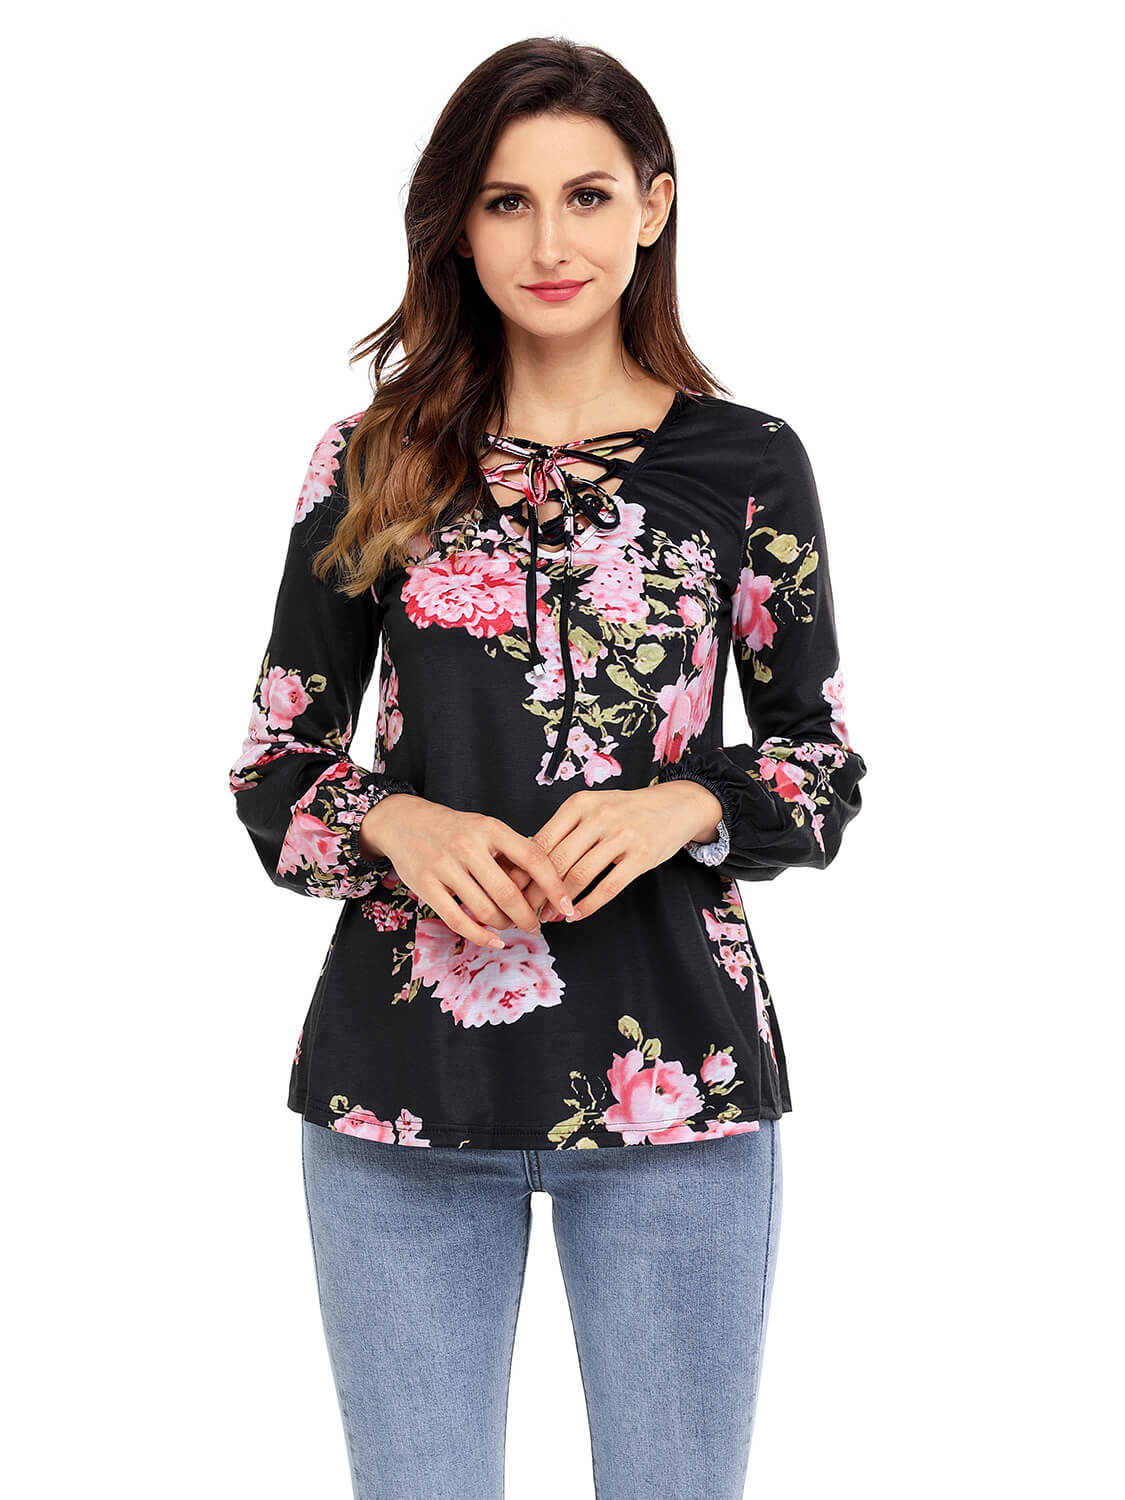 Black-Floral-Criss-Cross-Long-Sleeve-Top